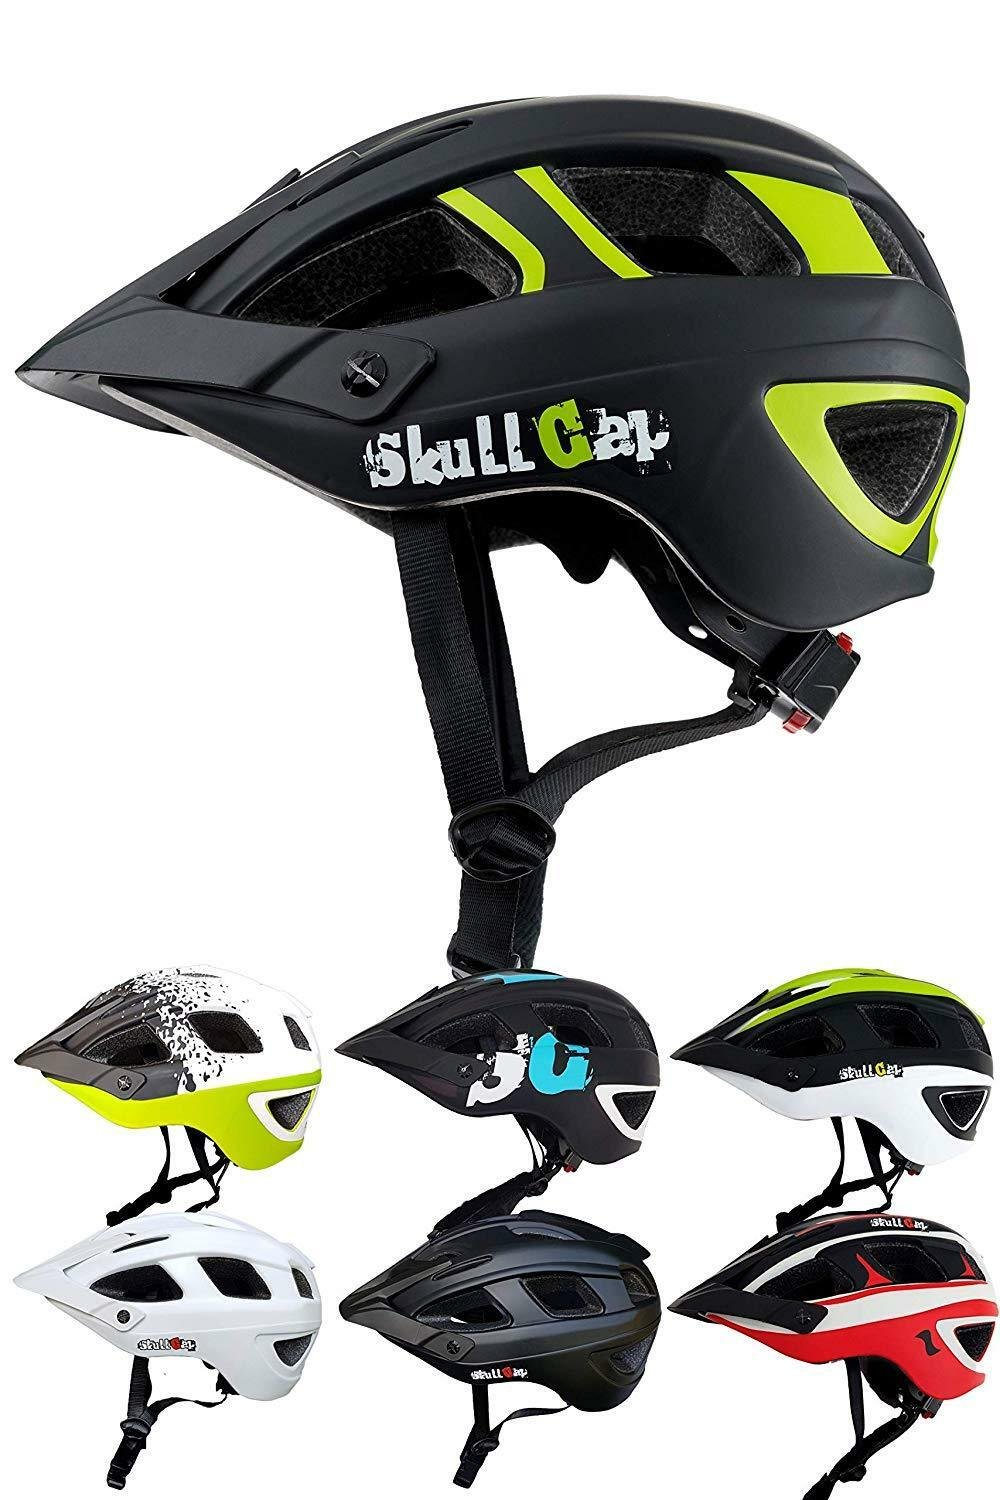 skullcap fahrradhelm mtb helm mountainbike helm herren damen visier helmschild wundr store. Black Bedroom Furniture Sets. Home Design Ideas